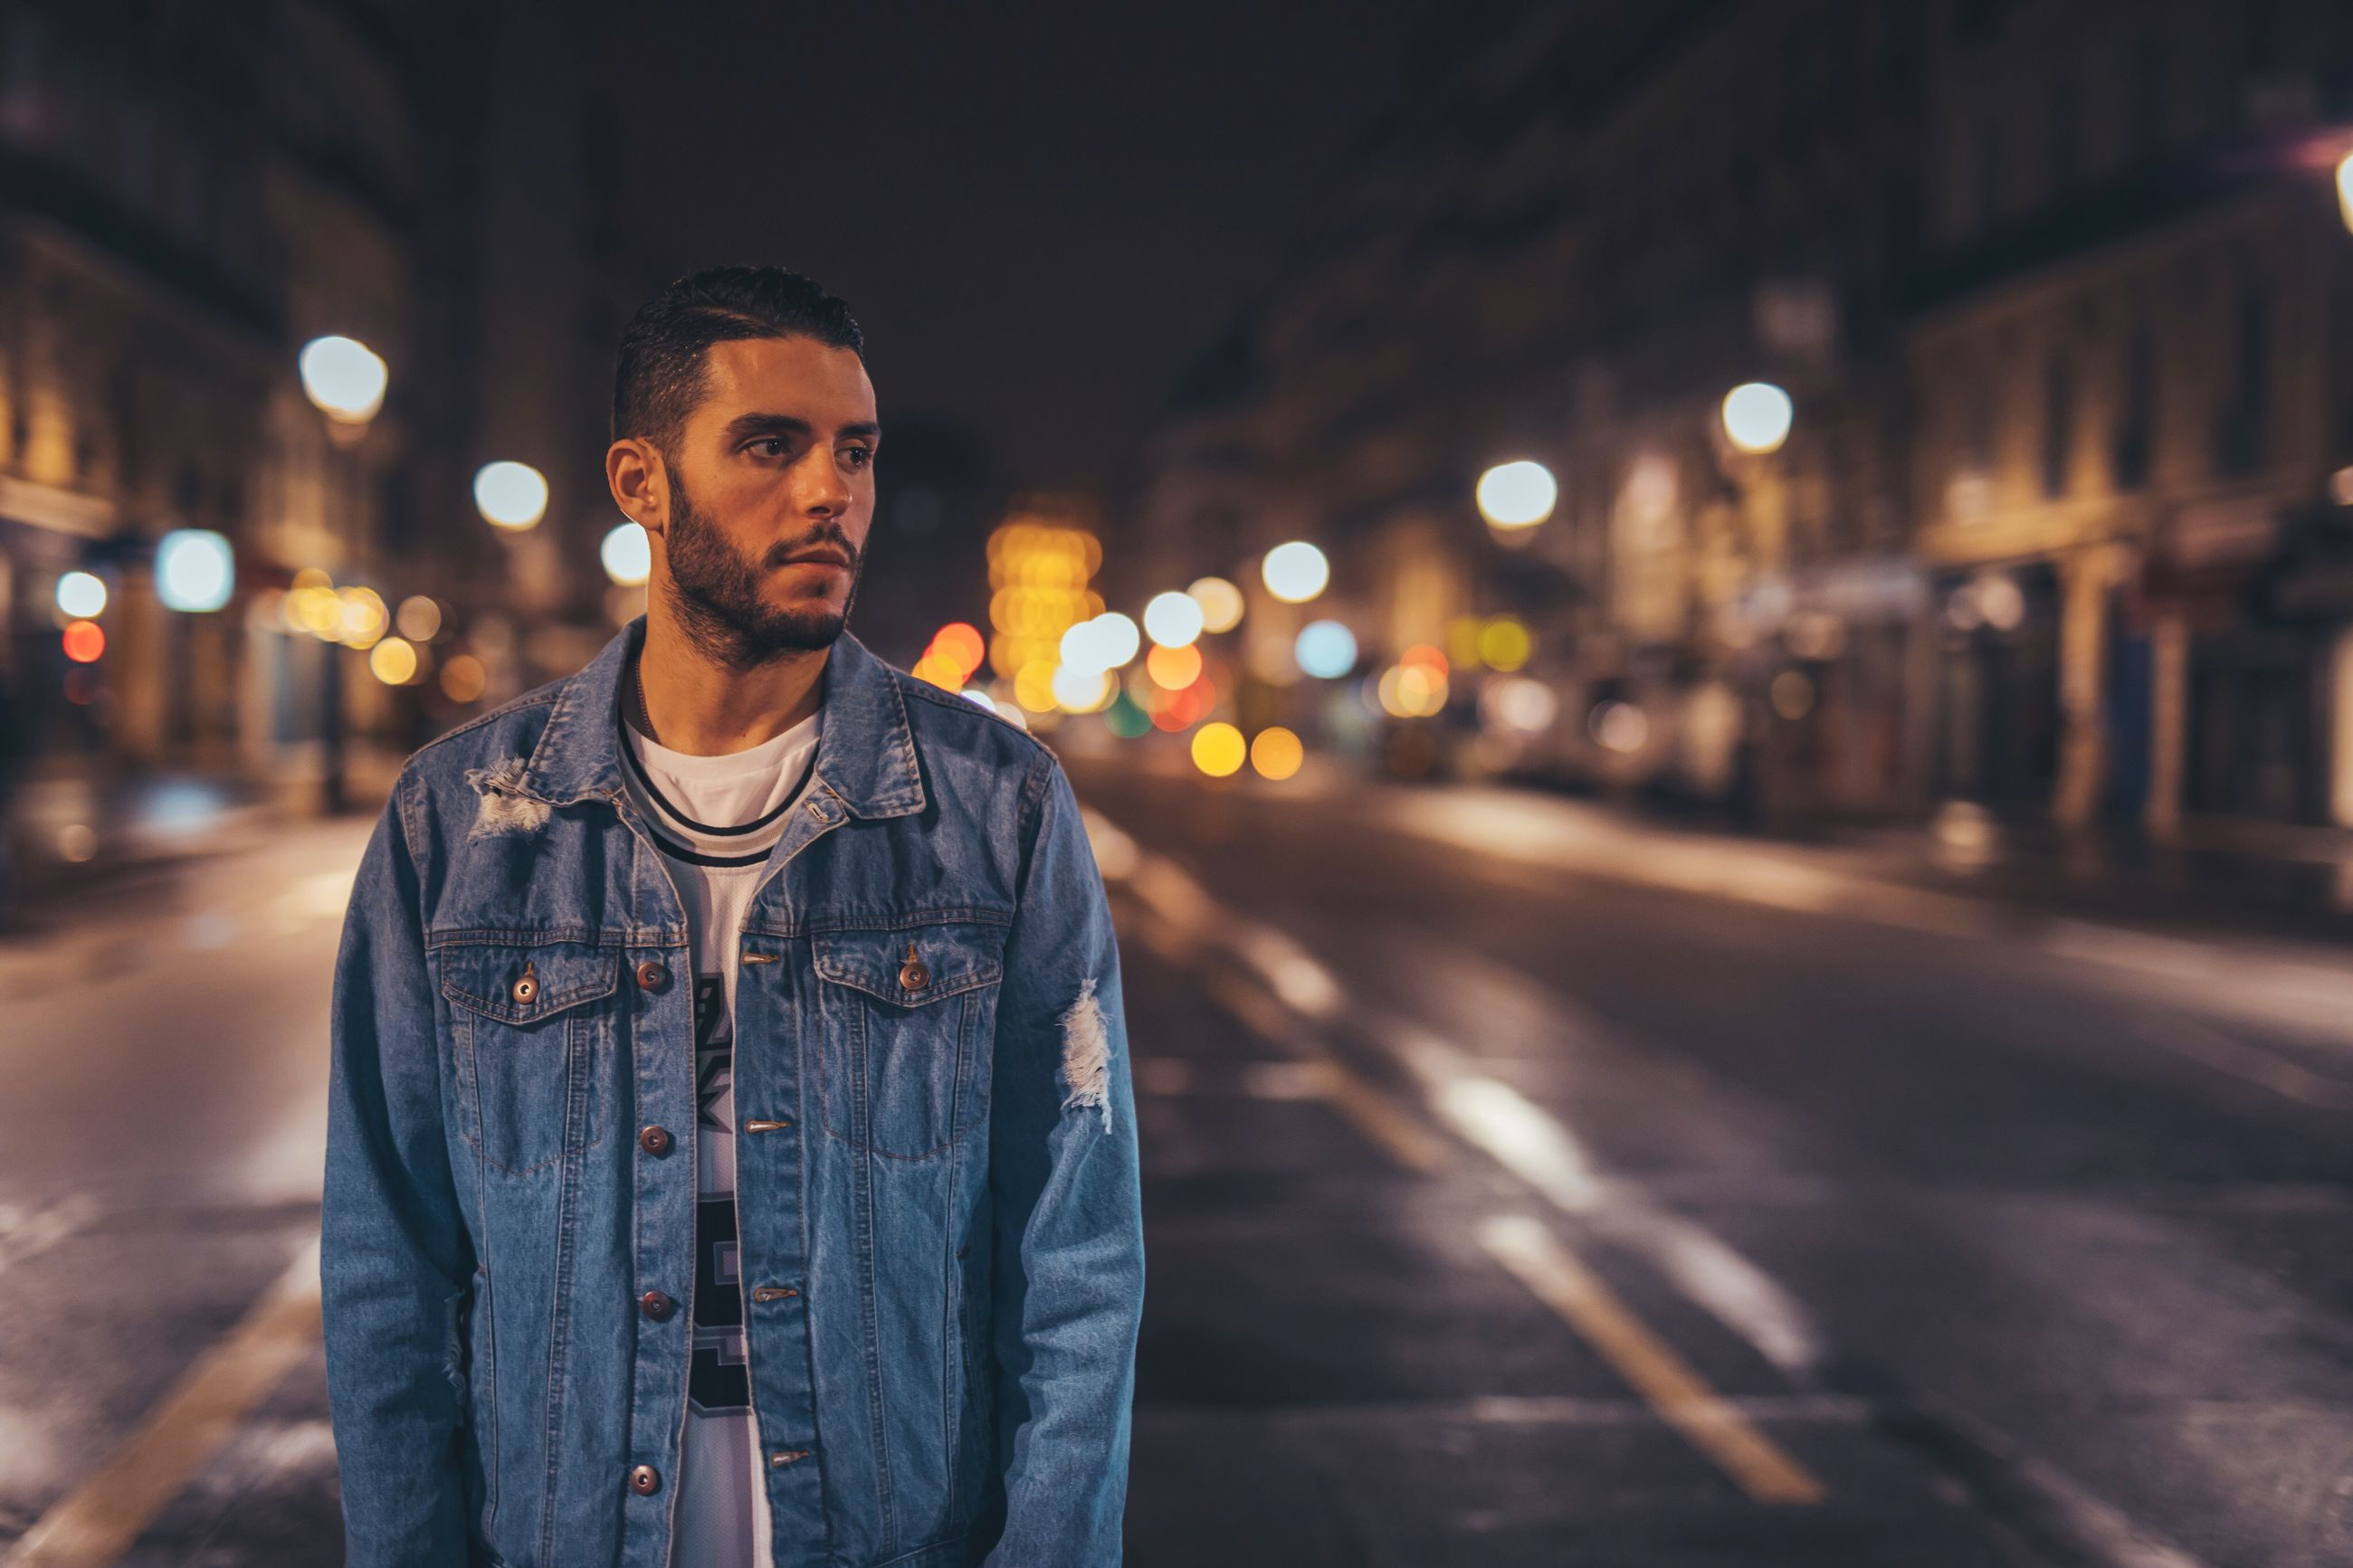 night, illuminated, street, front view, focus on foreground, jacket, one person, young adult, outdoors, city, casual clothing, building exterior, lifestyles, real people, portrait, fashion, winter, looking at camera, built structure, warm clothing, denim jacket, cold temperature, architecture, young women, people